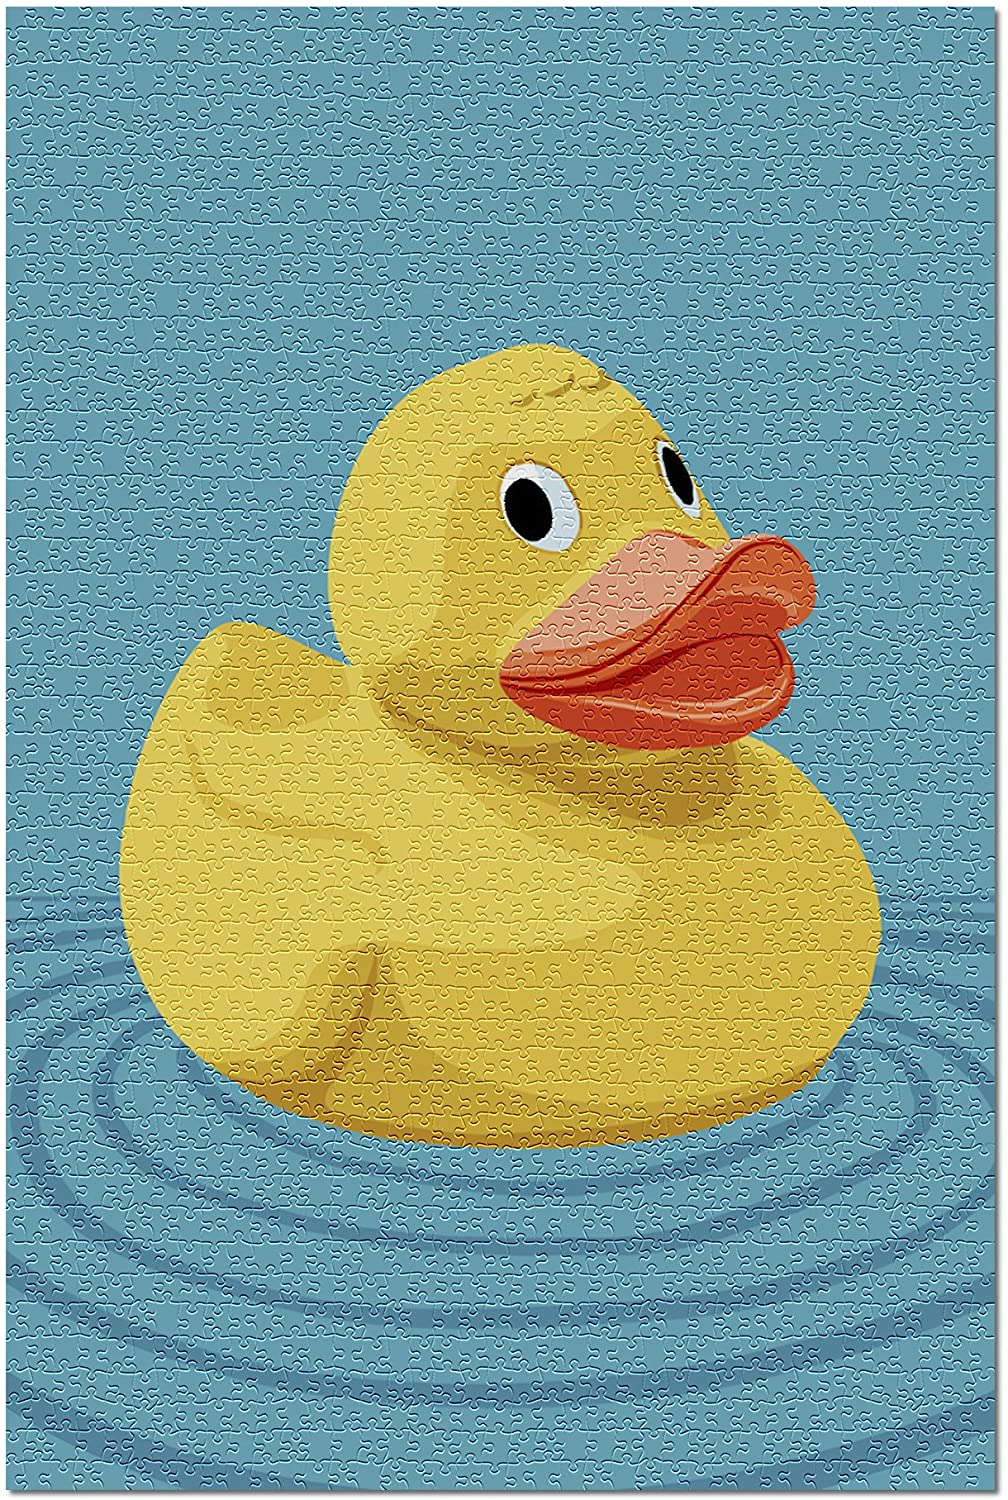 Rubber Duck - Letterpress (Premium 1000 Piece Jigsaw Puzzle for Adults, 19x27)